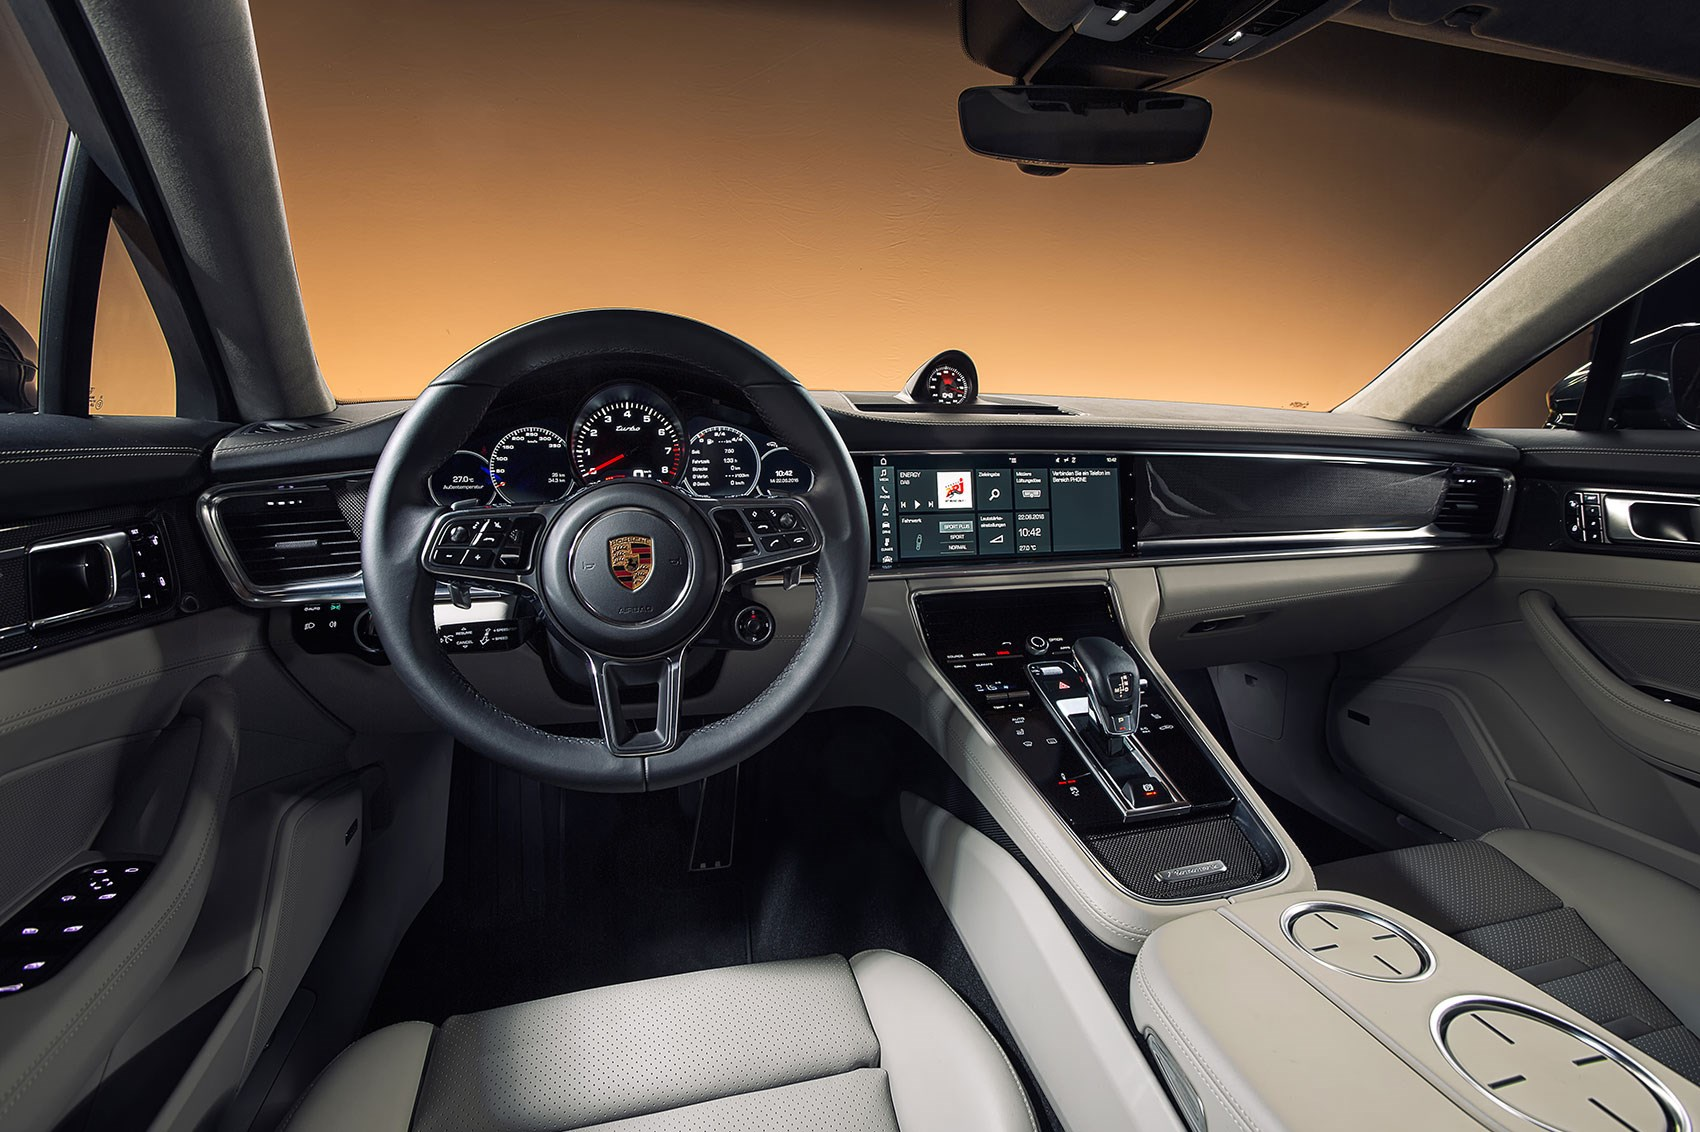 Front Wheel Drive Cars >> Pan-am flight #2: new 2016 Porsche Panamera in pictures | CAR Magazine